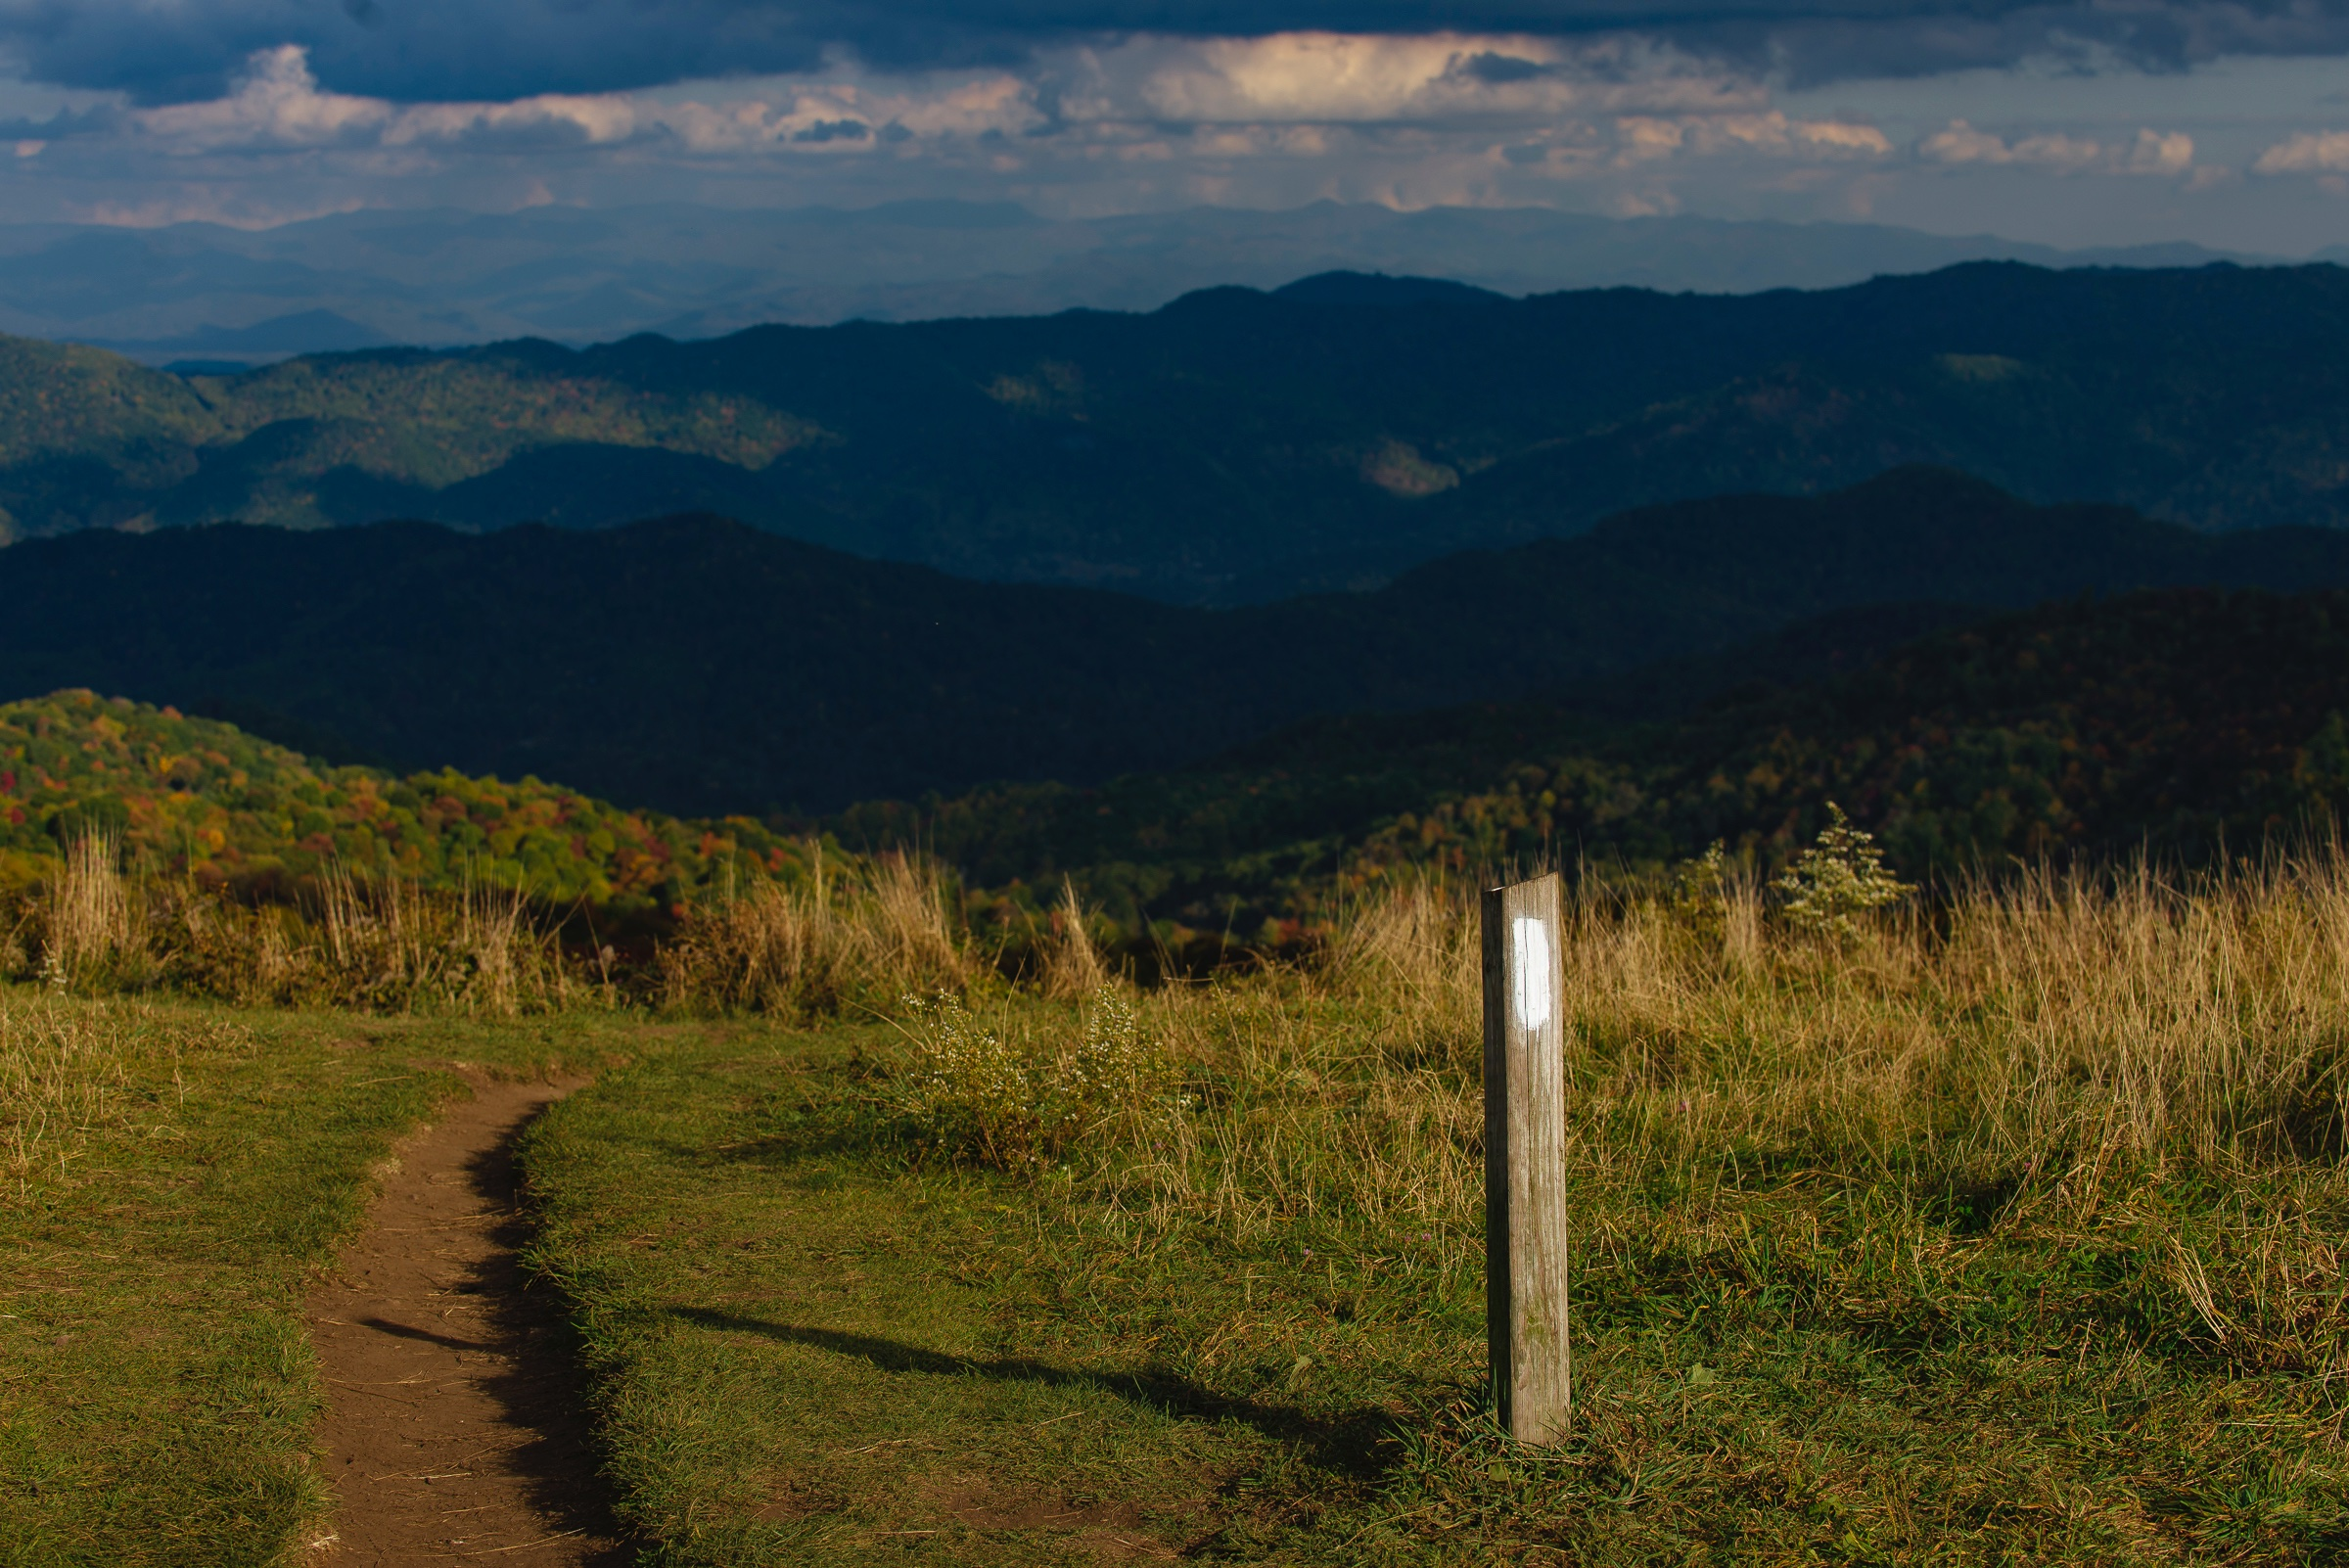 Hiking Trails - Two entrances to the Appalachian Trail,